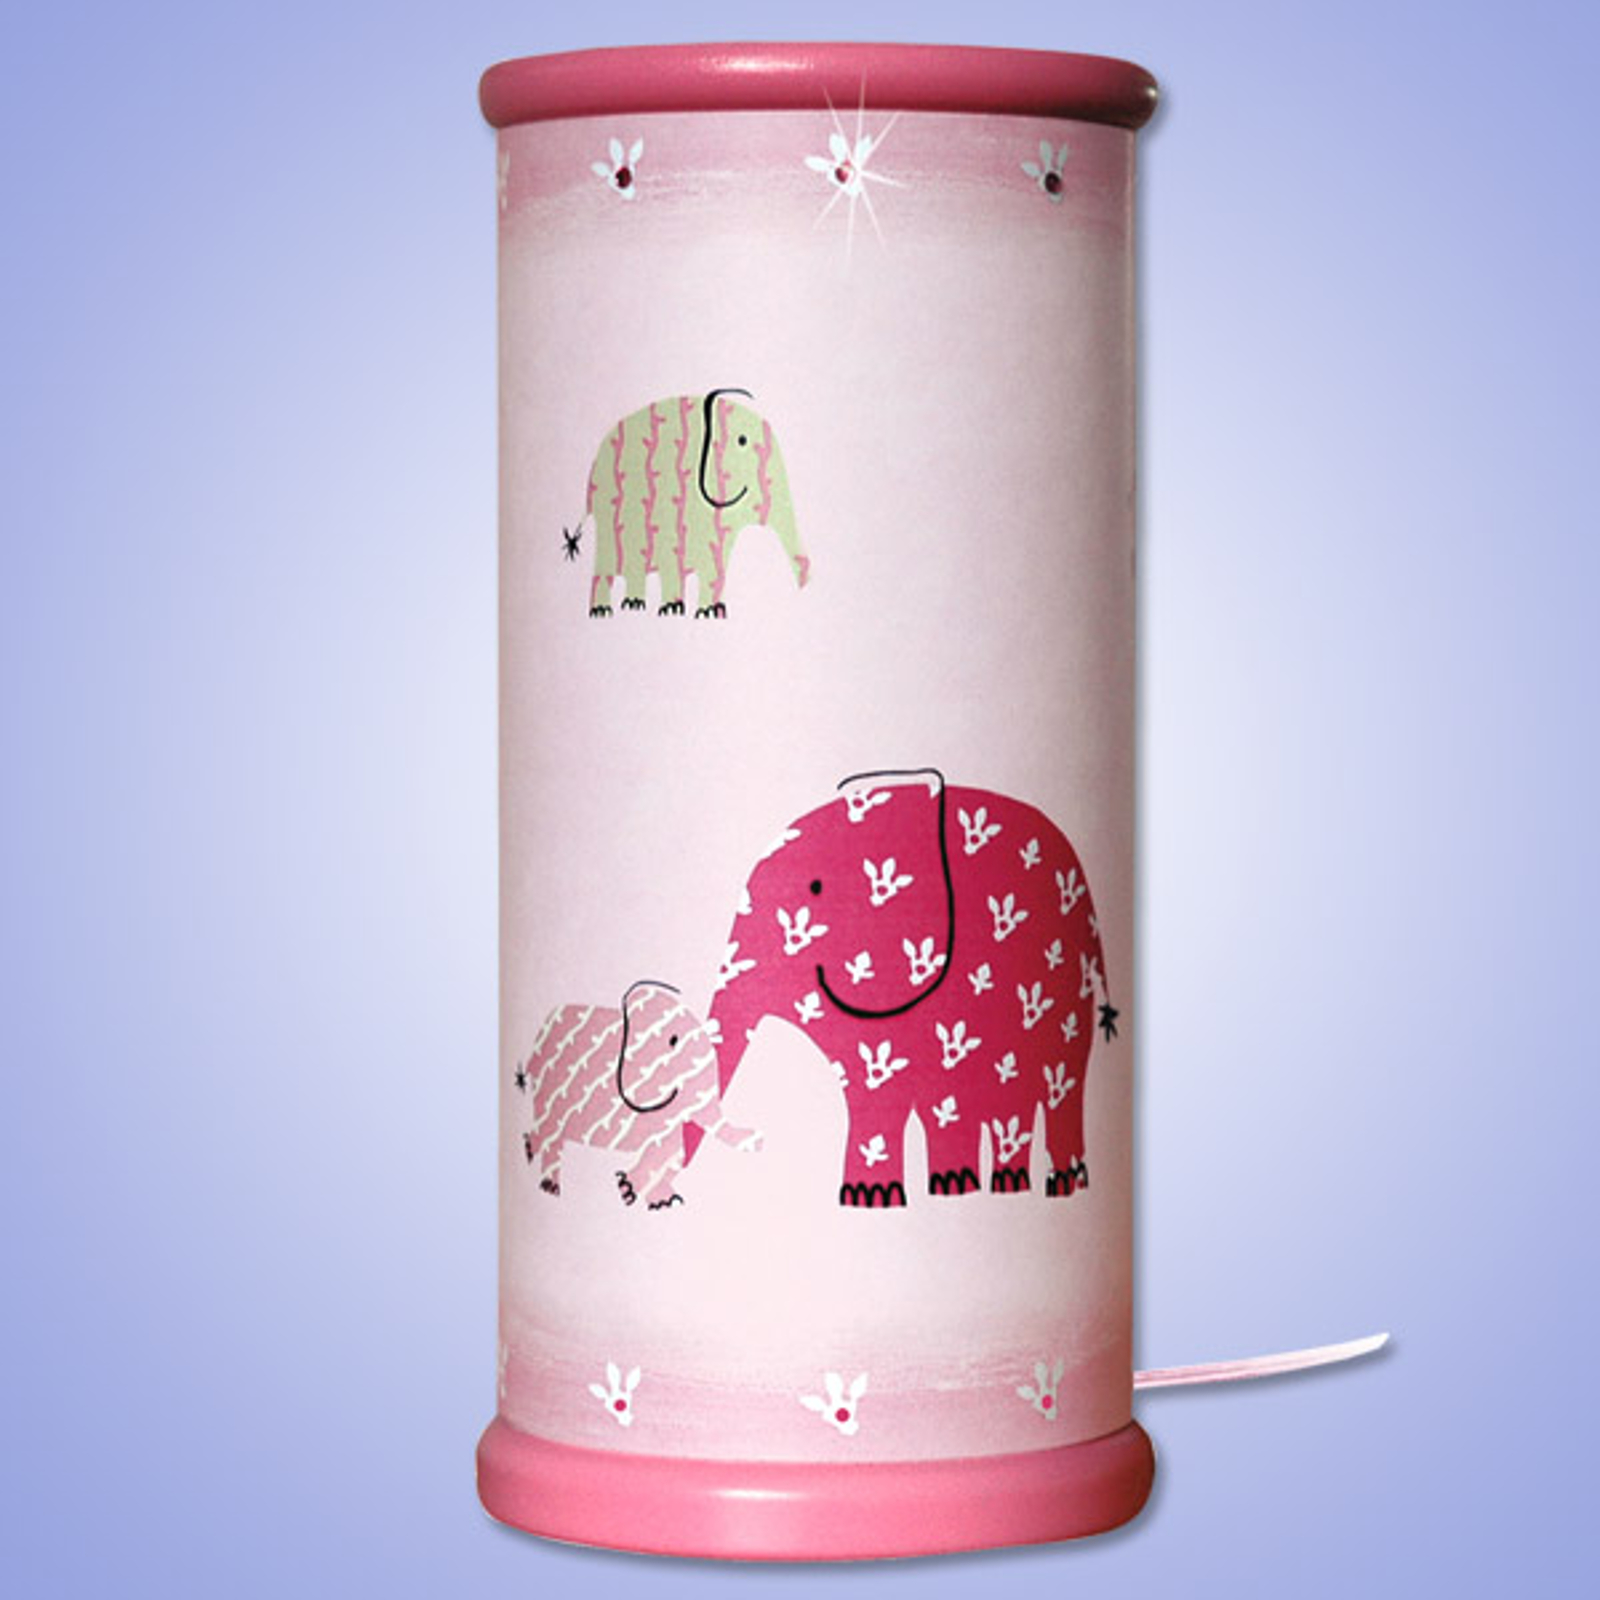 Betoverende LED tafellamp ELEFANT, pink